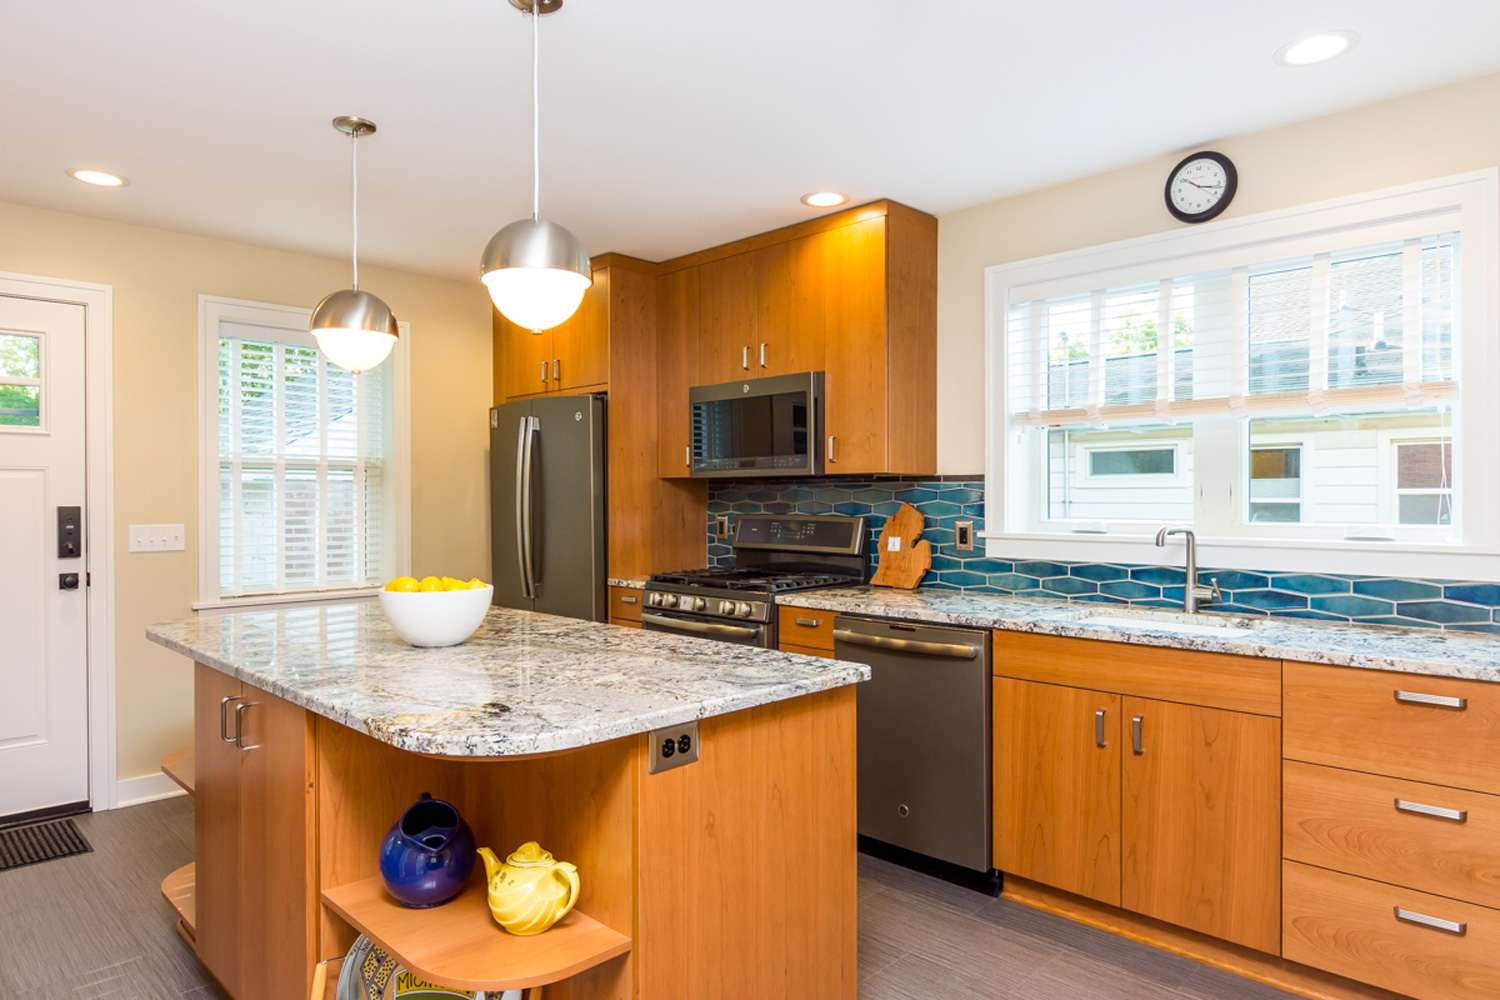 considering a new kitchen remodel how to choose the best kitchen faucet forward design build remodel